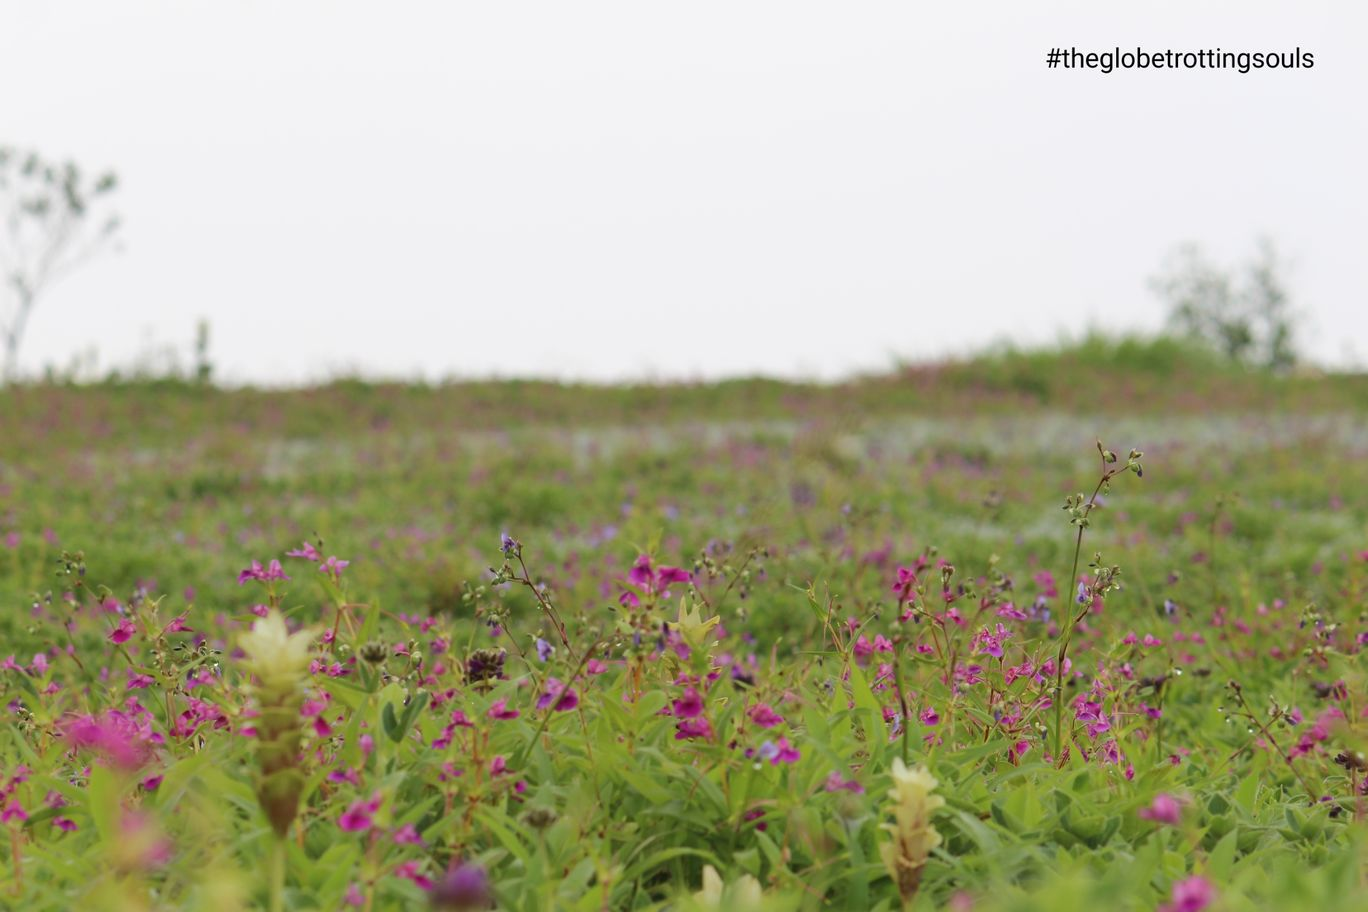 Photo of Kaas Plateau of Flowers By The Globetrotting Souls